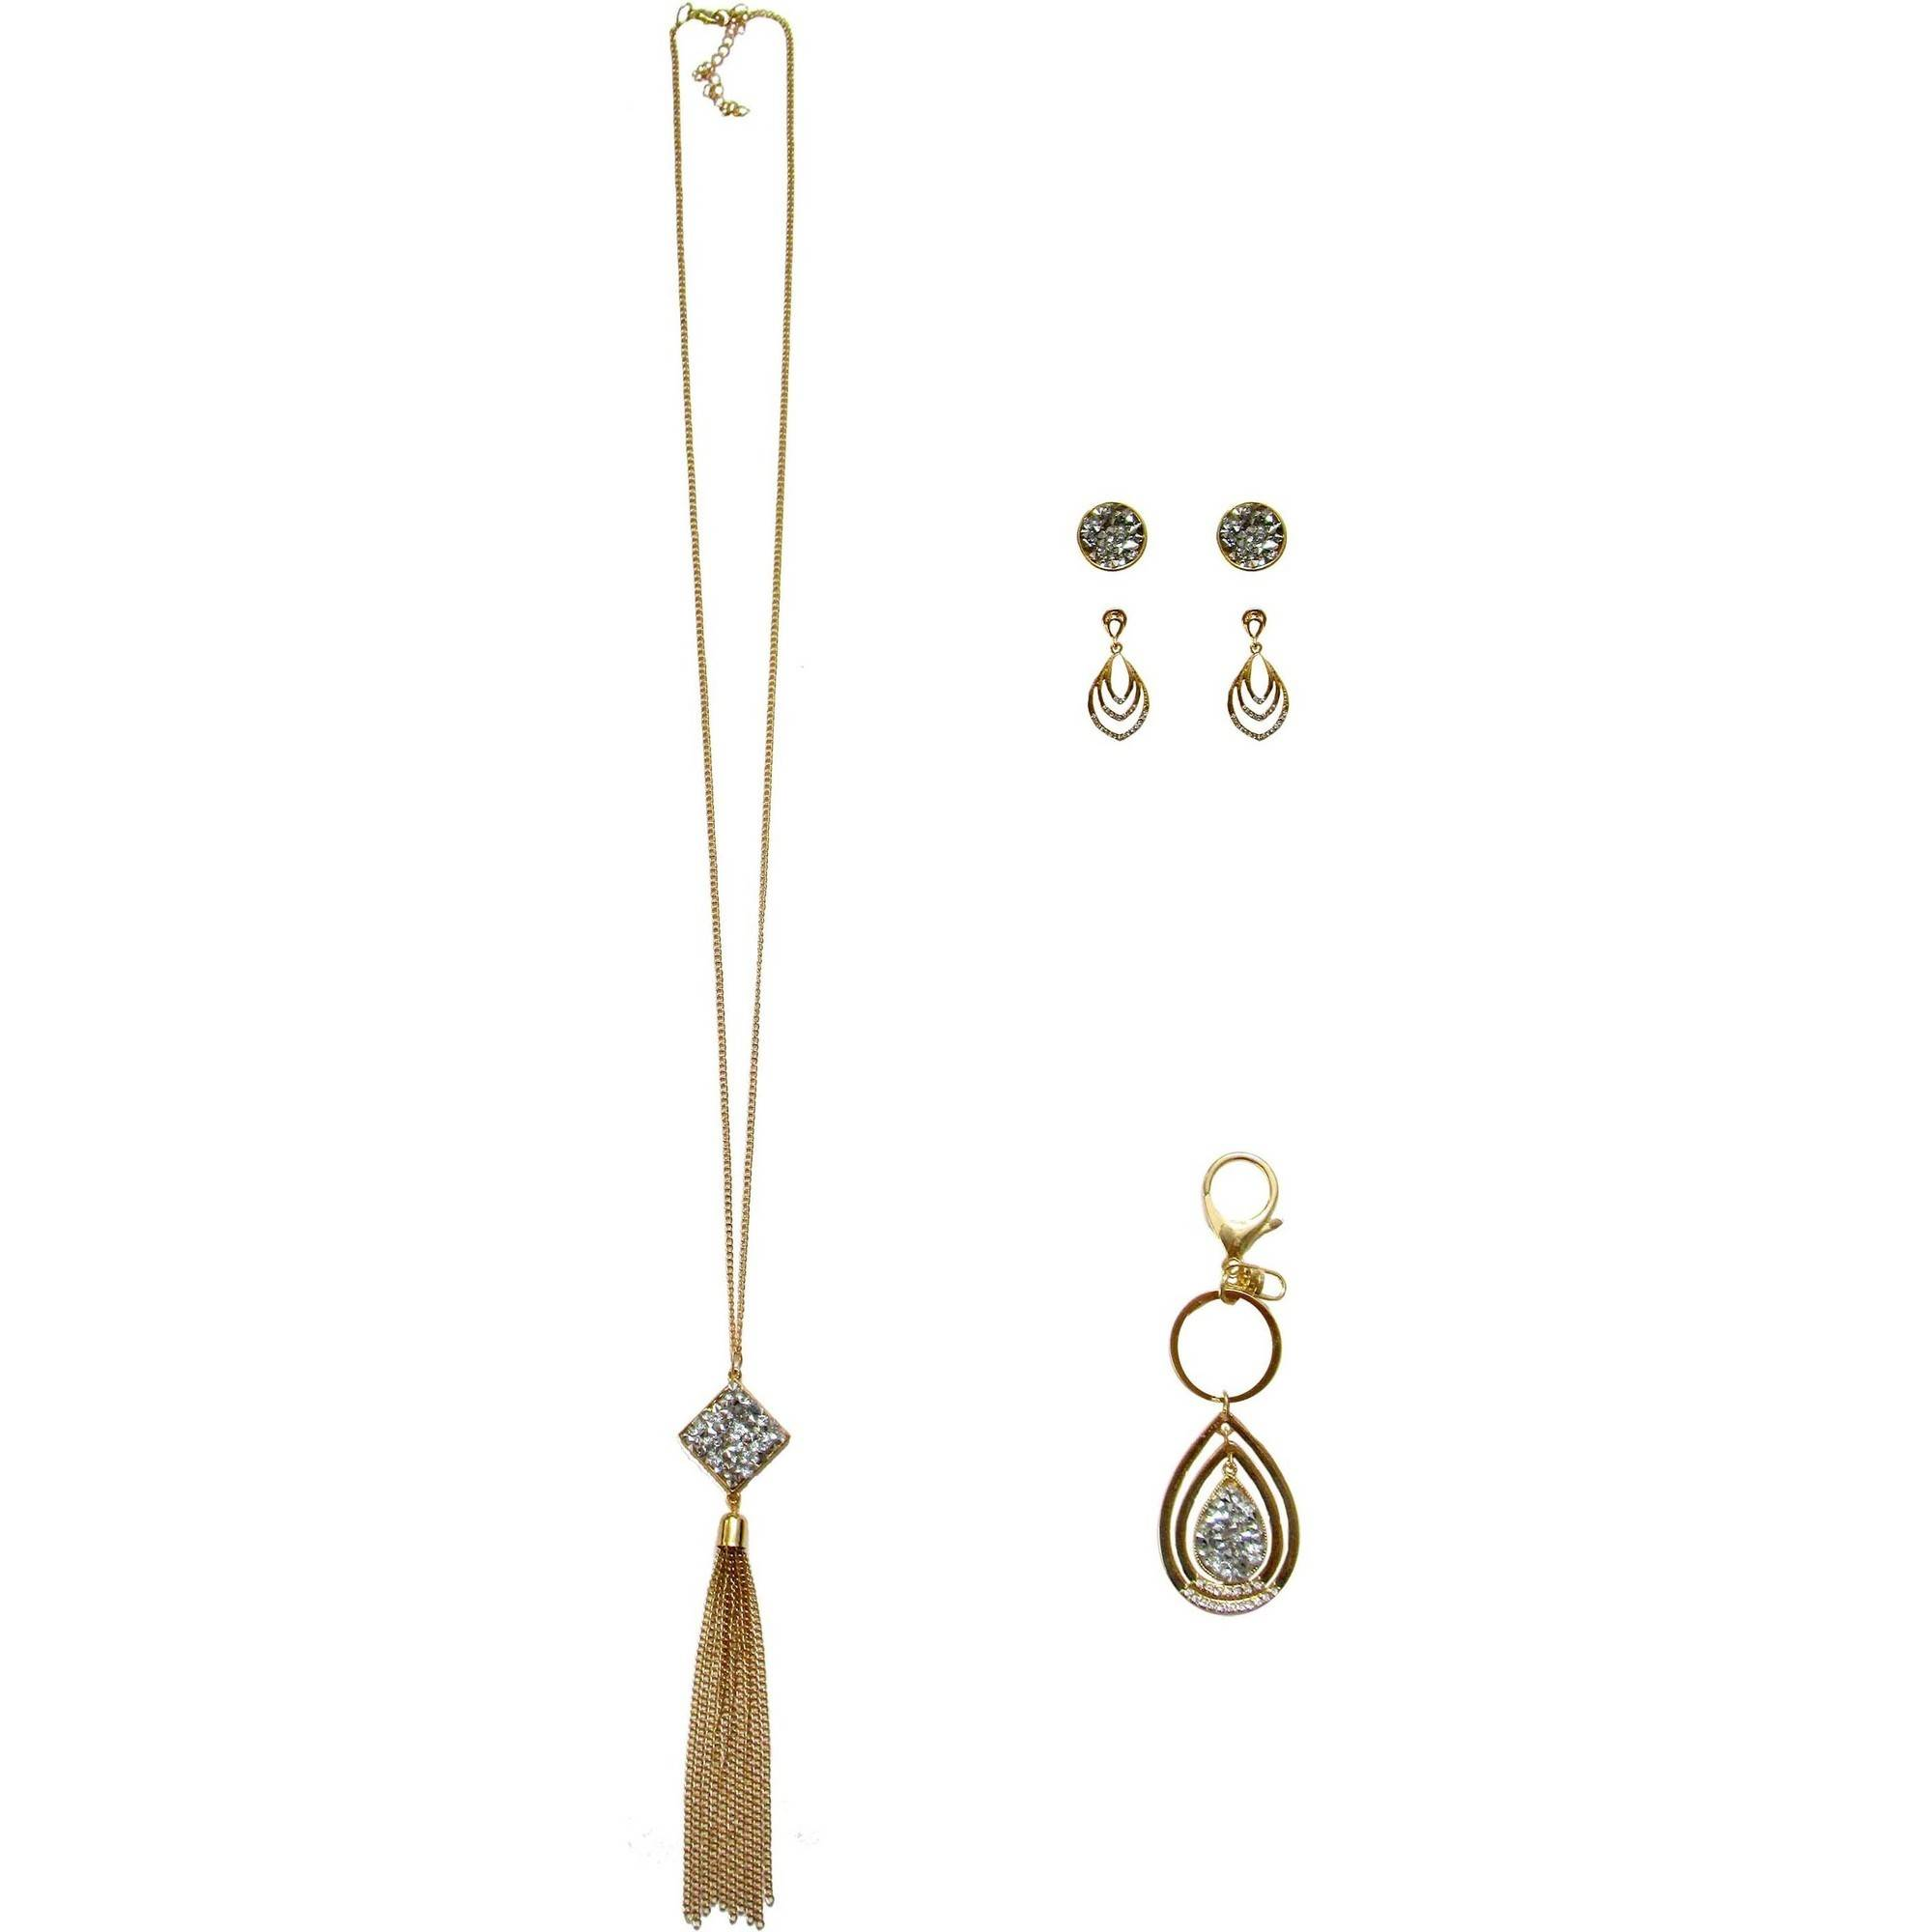 Gold-Tone Pendant Necklace, Trio Earrings and Key Ring Gift Set, 3-Piece